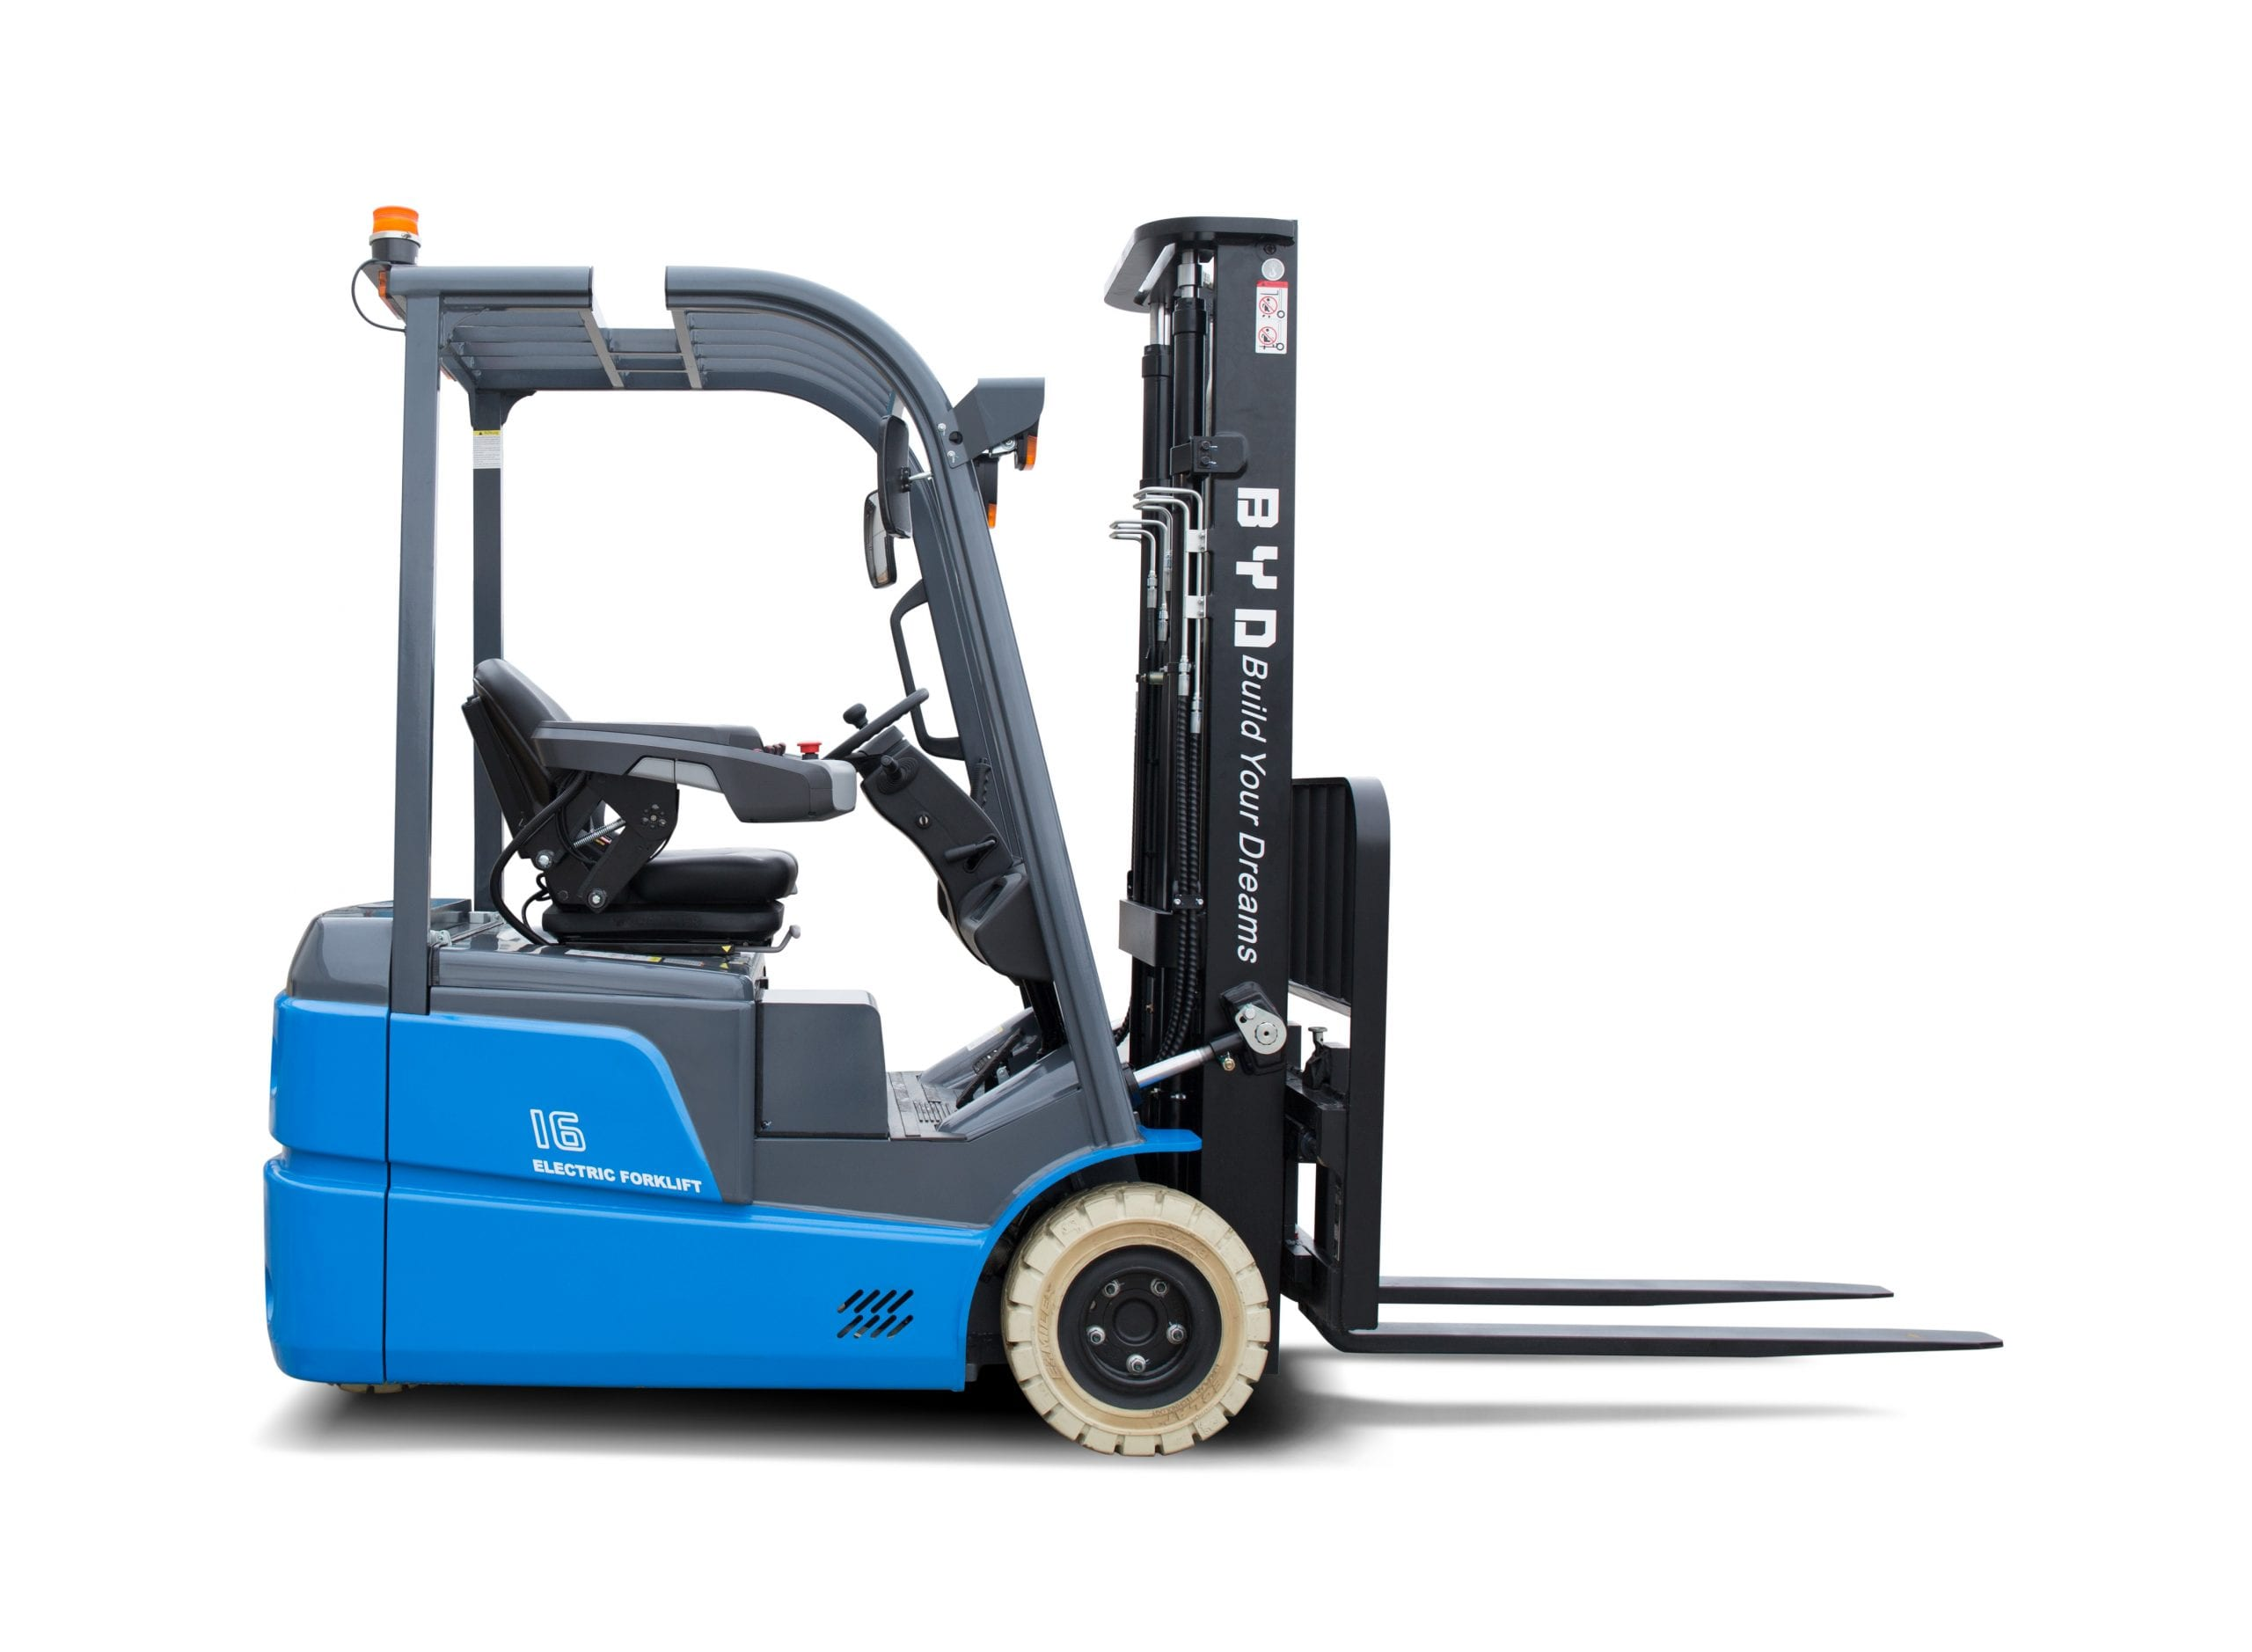 BYD ECB16 Iron Phosphate Forklift for Sale in UK, in areas like Leicester, Northampton, Nottingham, Birmingham, Derby, Warwick, West Midlands and East Midlands